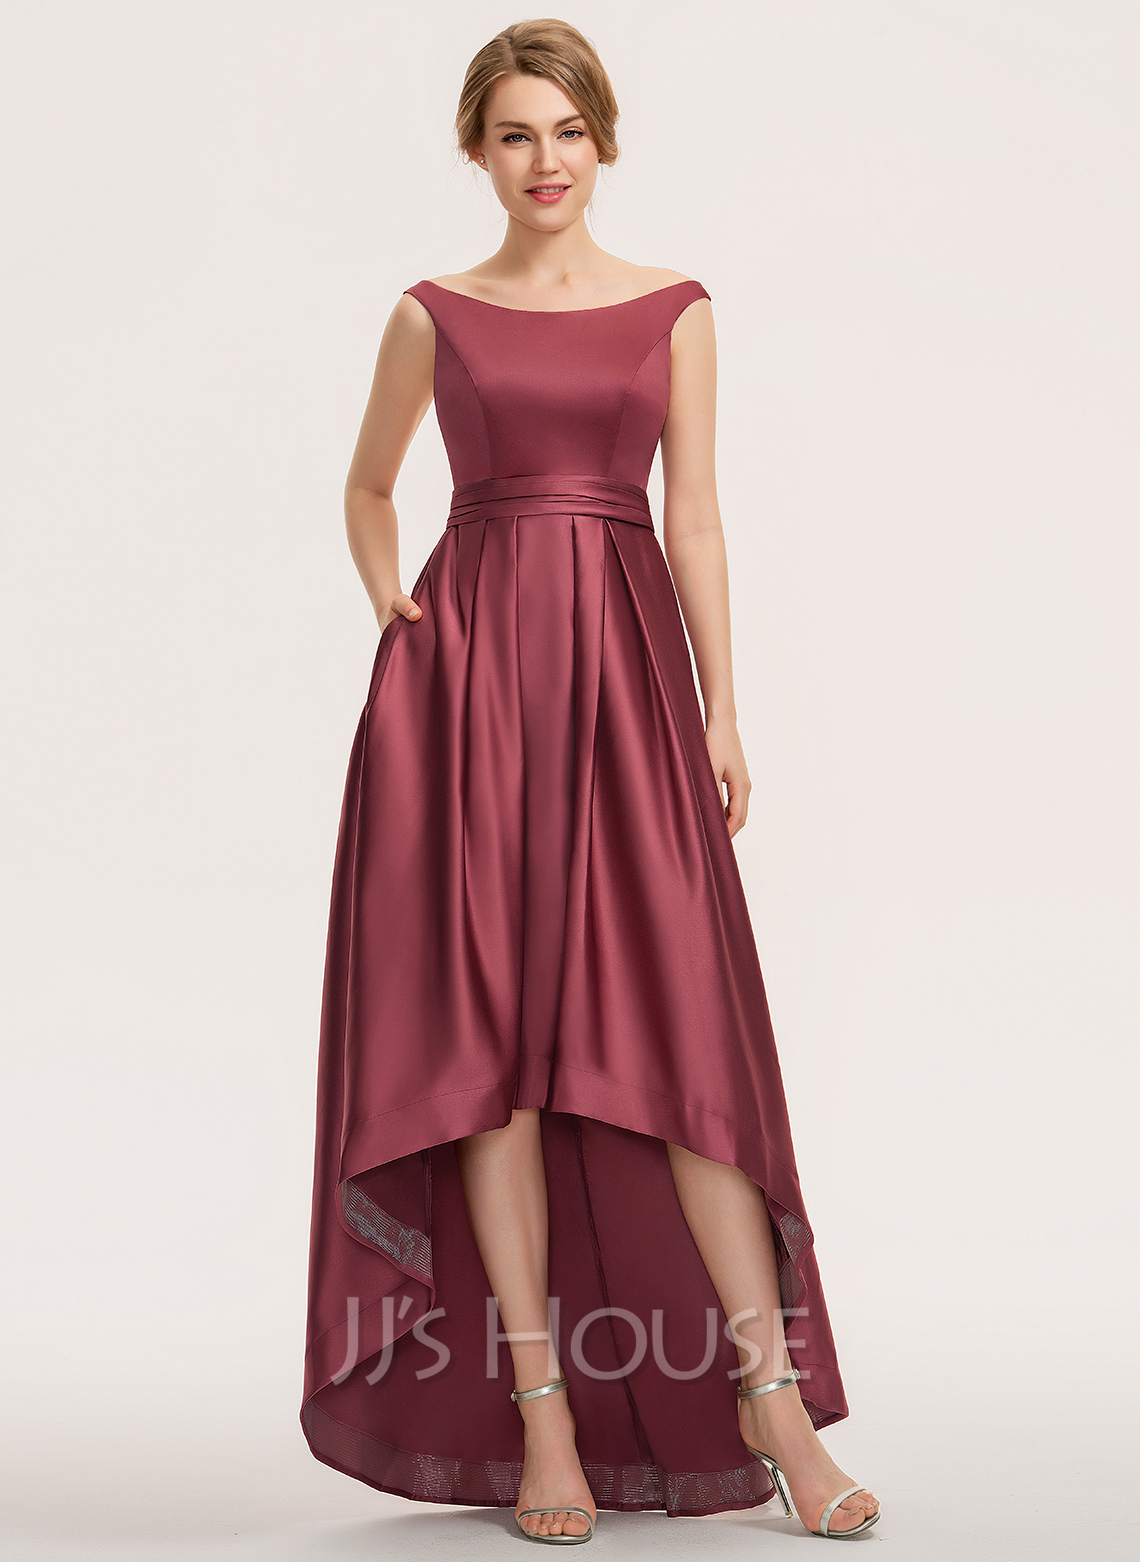 Off-the-Shoulder Asymmetrical Satin Bridesmaid Dress With Ruffle Pockets